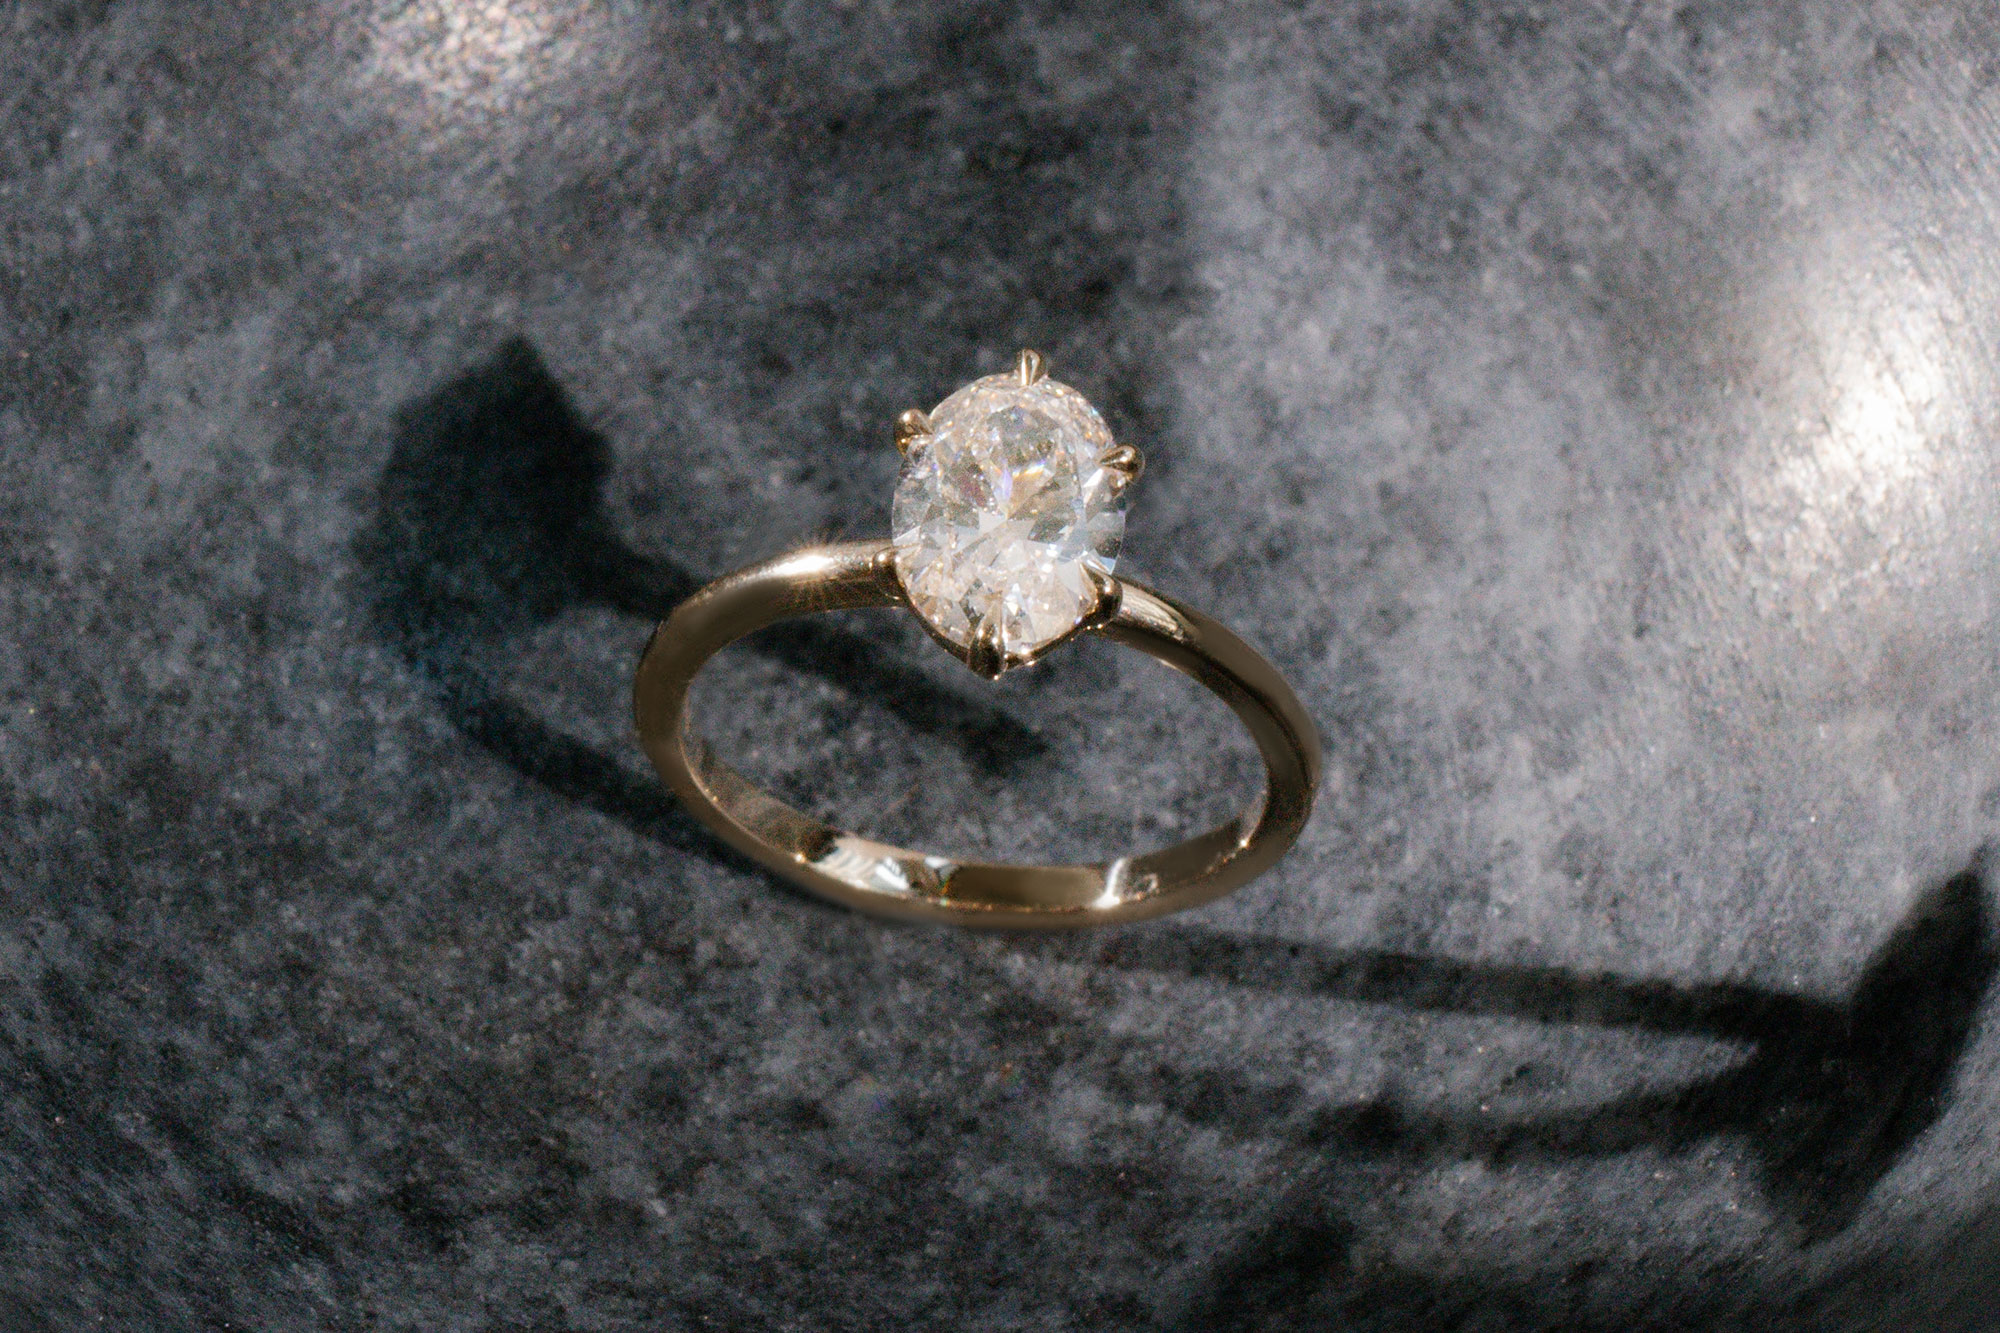 The oval signature 6 prong with yellow gold band